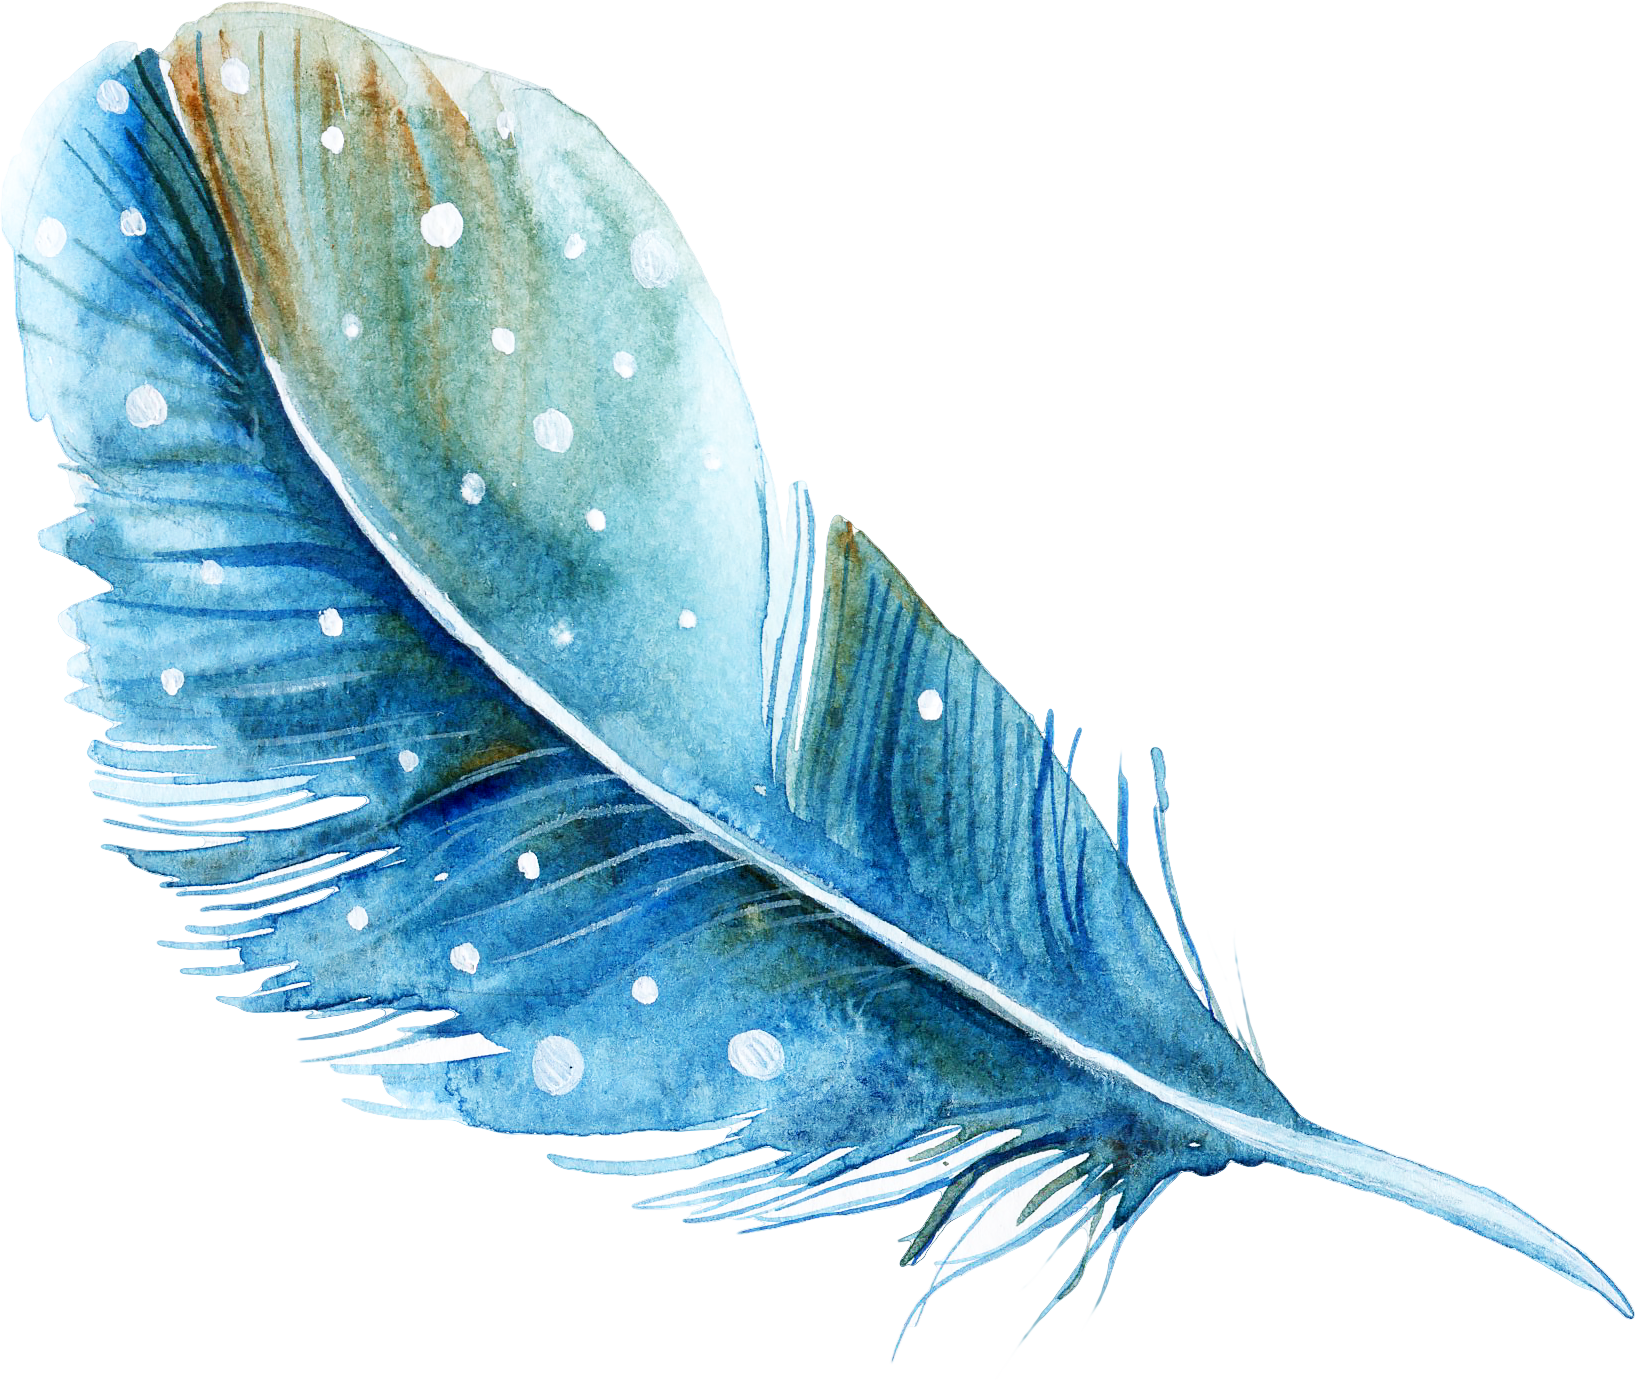 Download Watercolor Feather Painting PNG Image High Quality.